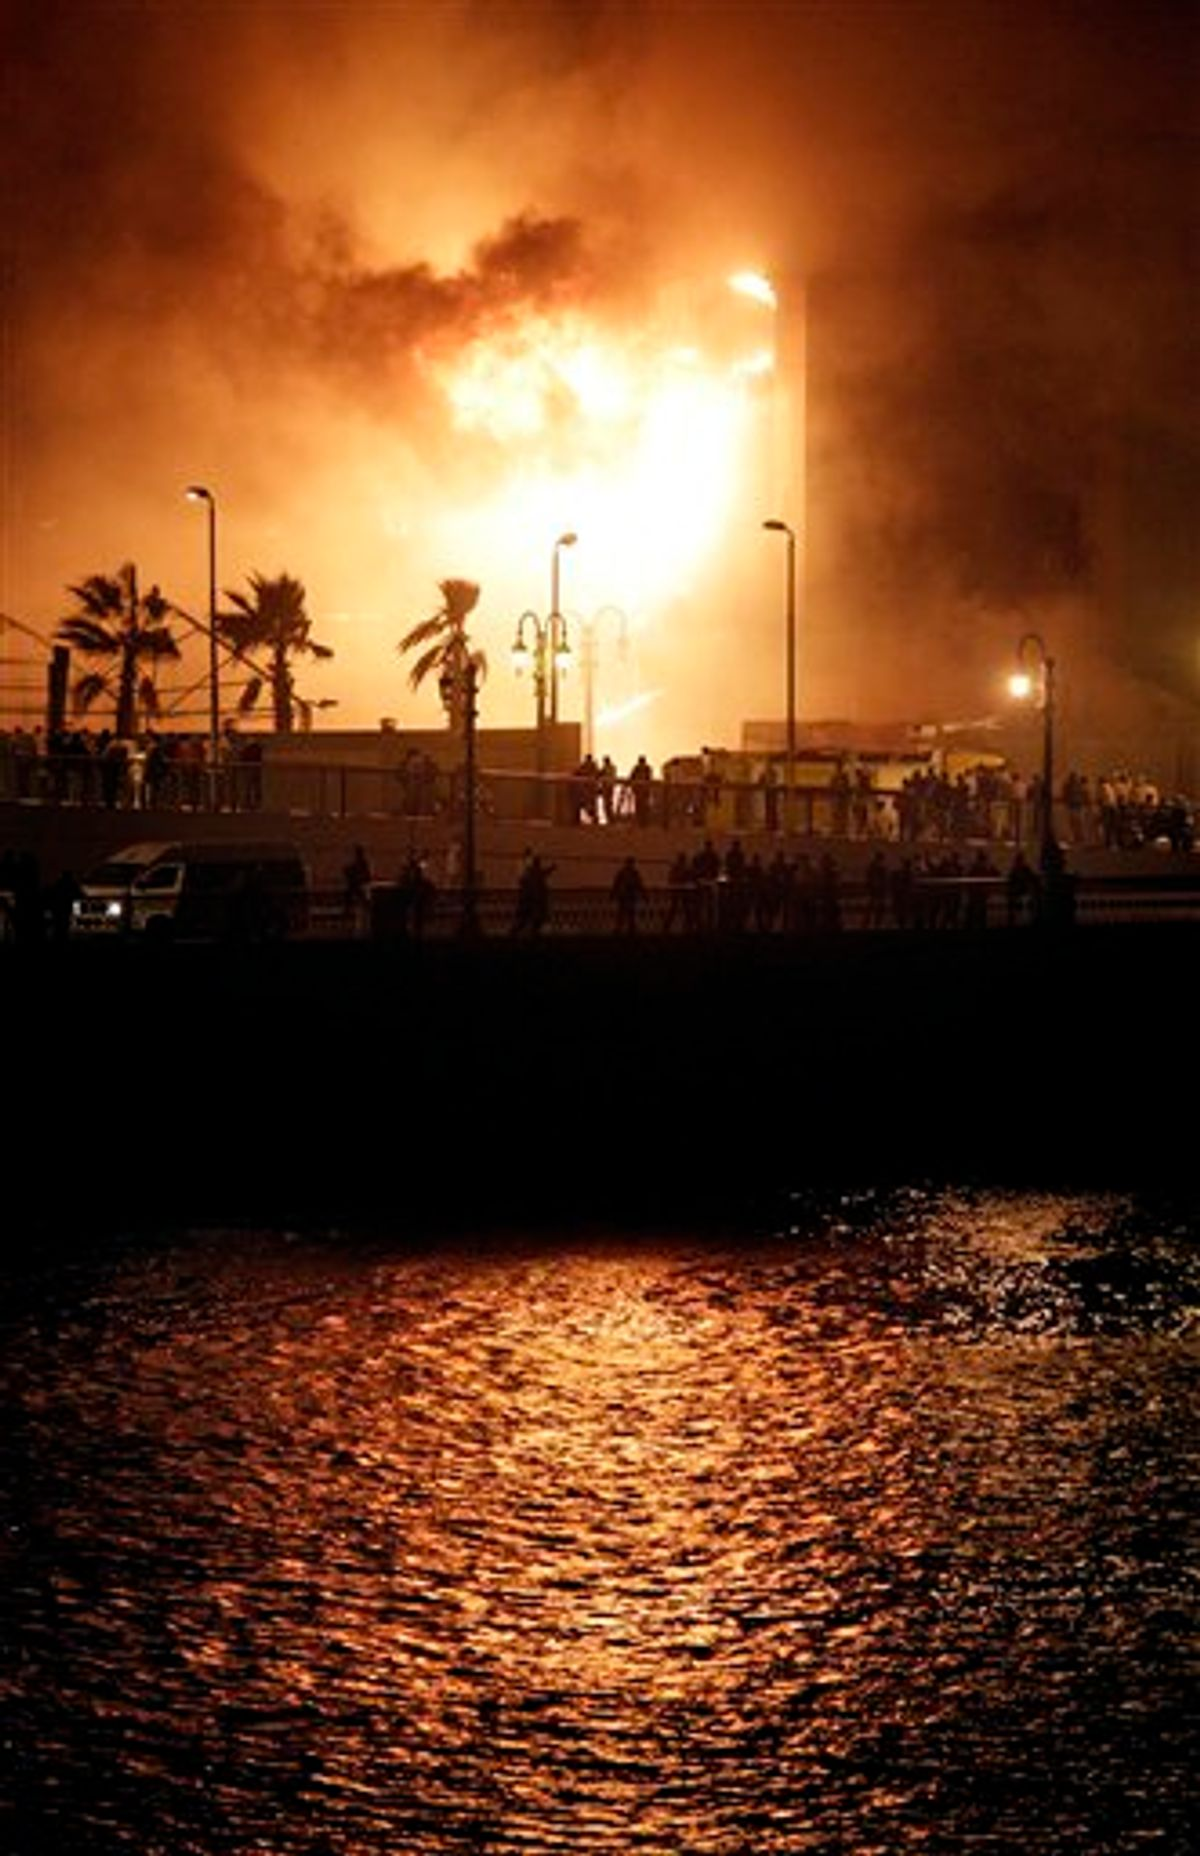 Fires burn in the National Democratic Party ruling party headquarters, after it was set alight by anti-government protesters, in downtown Cairo, Egypt, Friday, Jan. 28, 2011. (AP Photo/Ben Curtis) (AP)